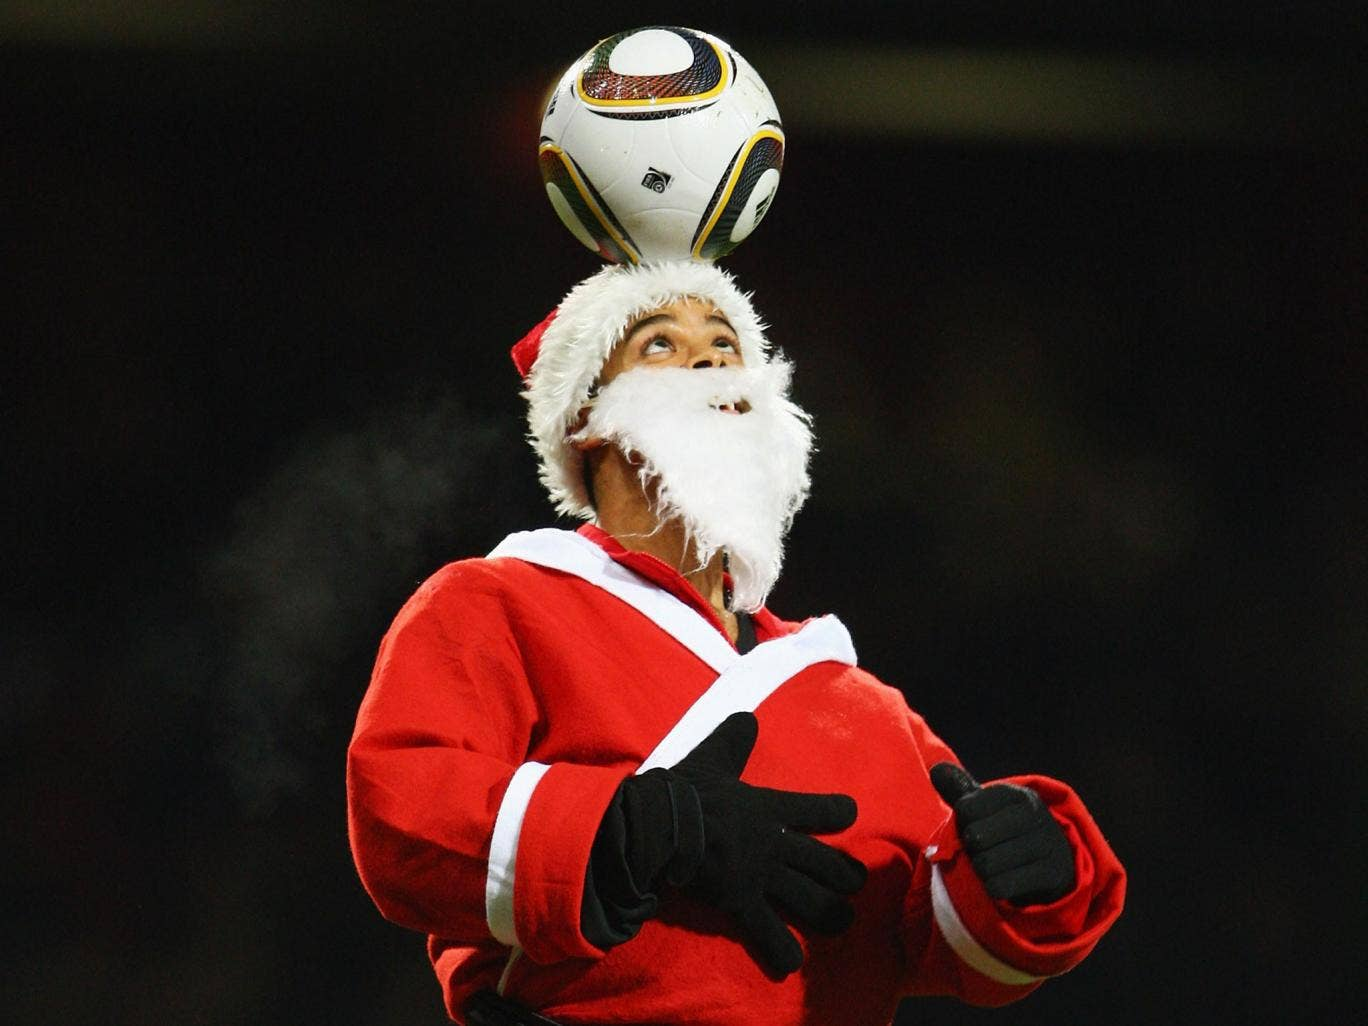 Christmas and football go hand in hand. But for once I can take a back seat this year